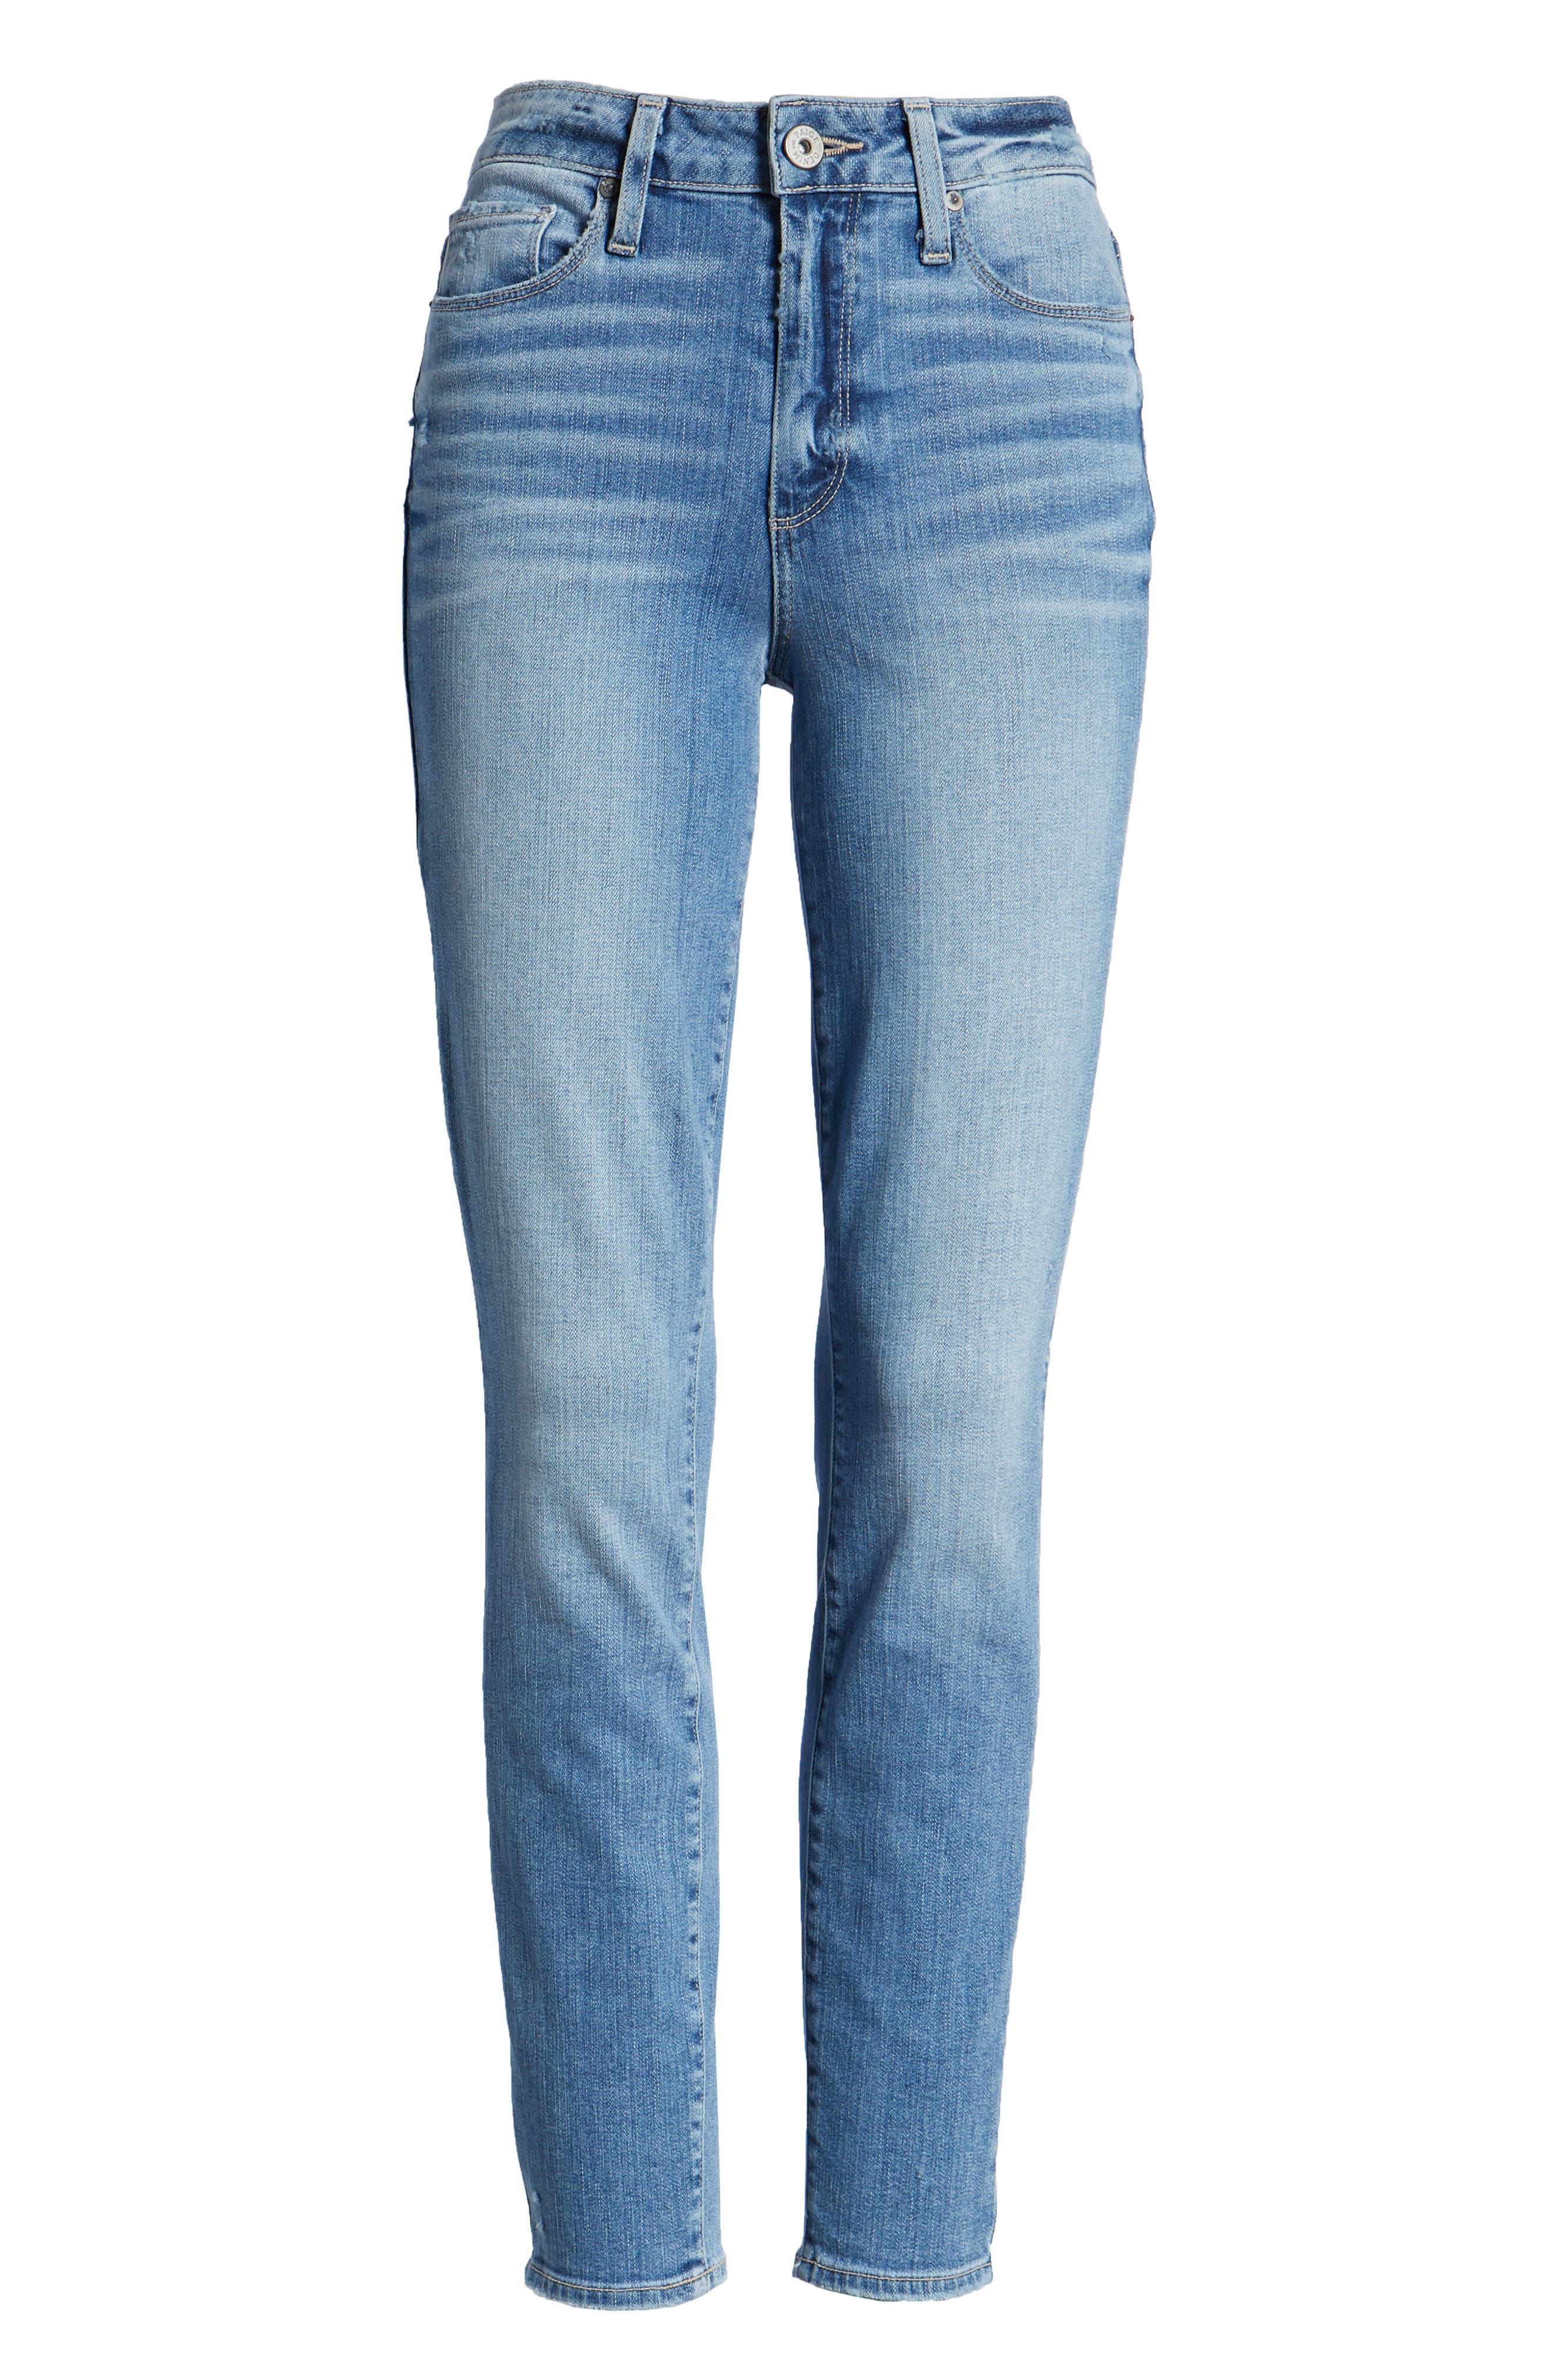 Hoxton Distressed Ankle Jeans,                             Alternate thumbnail 7, color,                             Soto